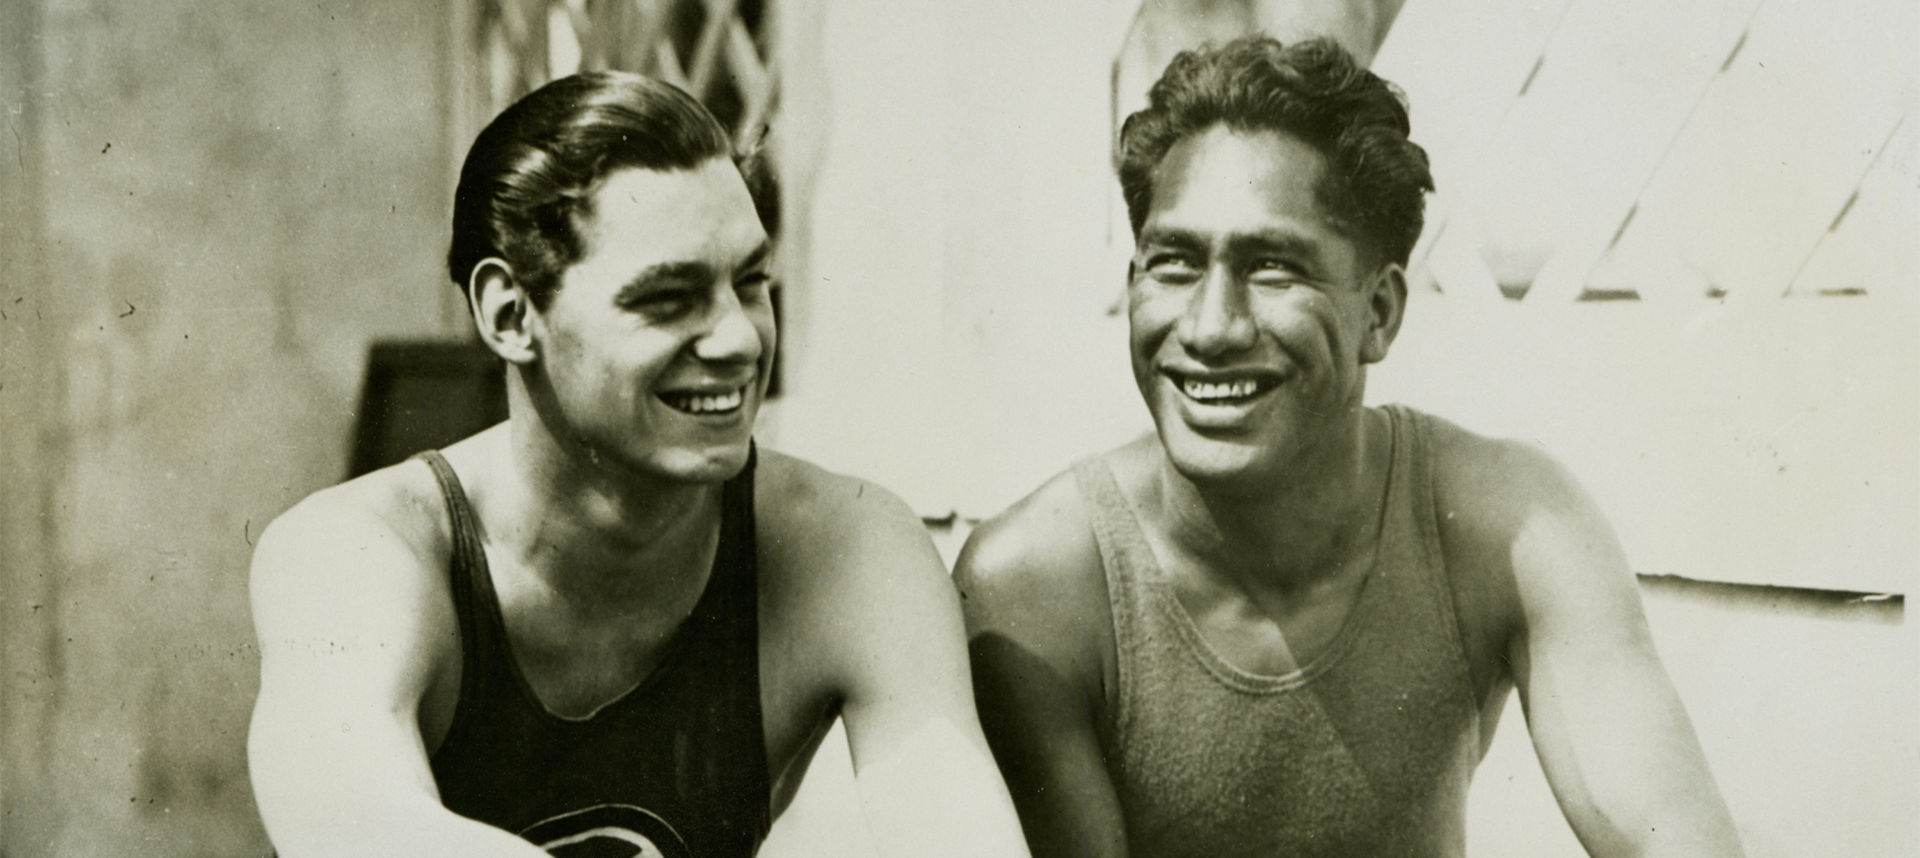 Duke Kahanamoku and a male